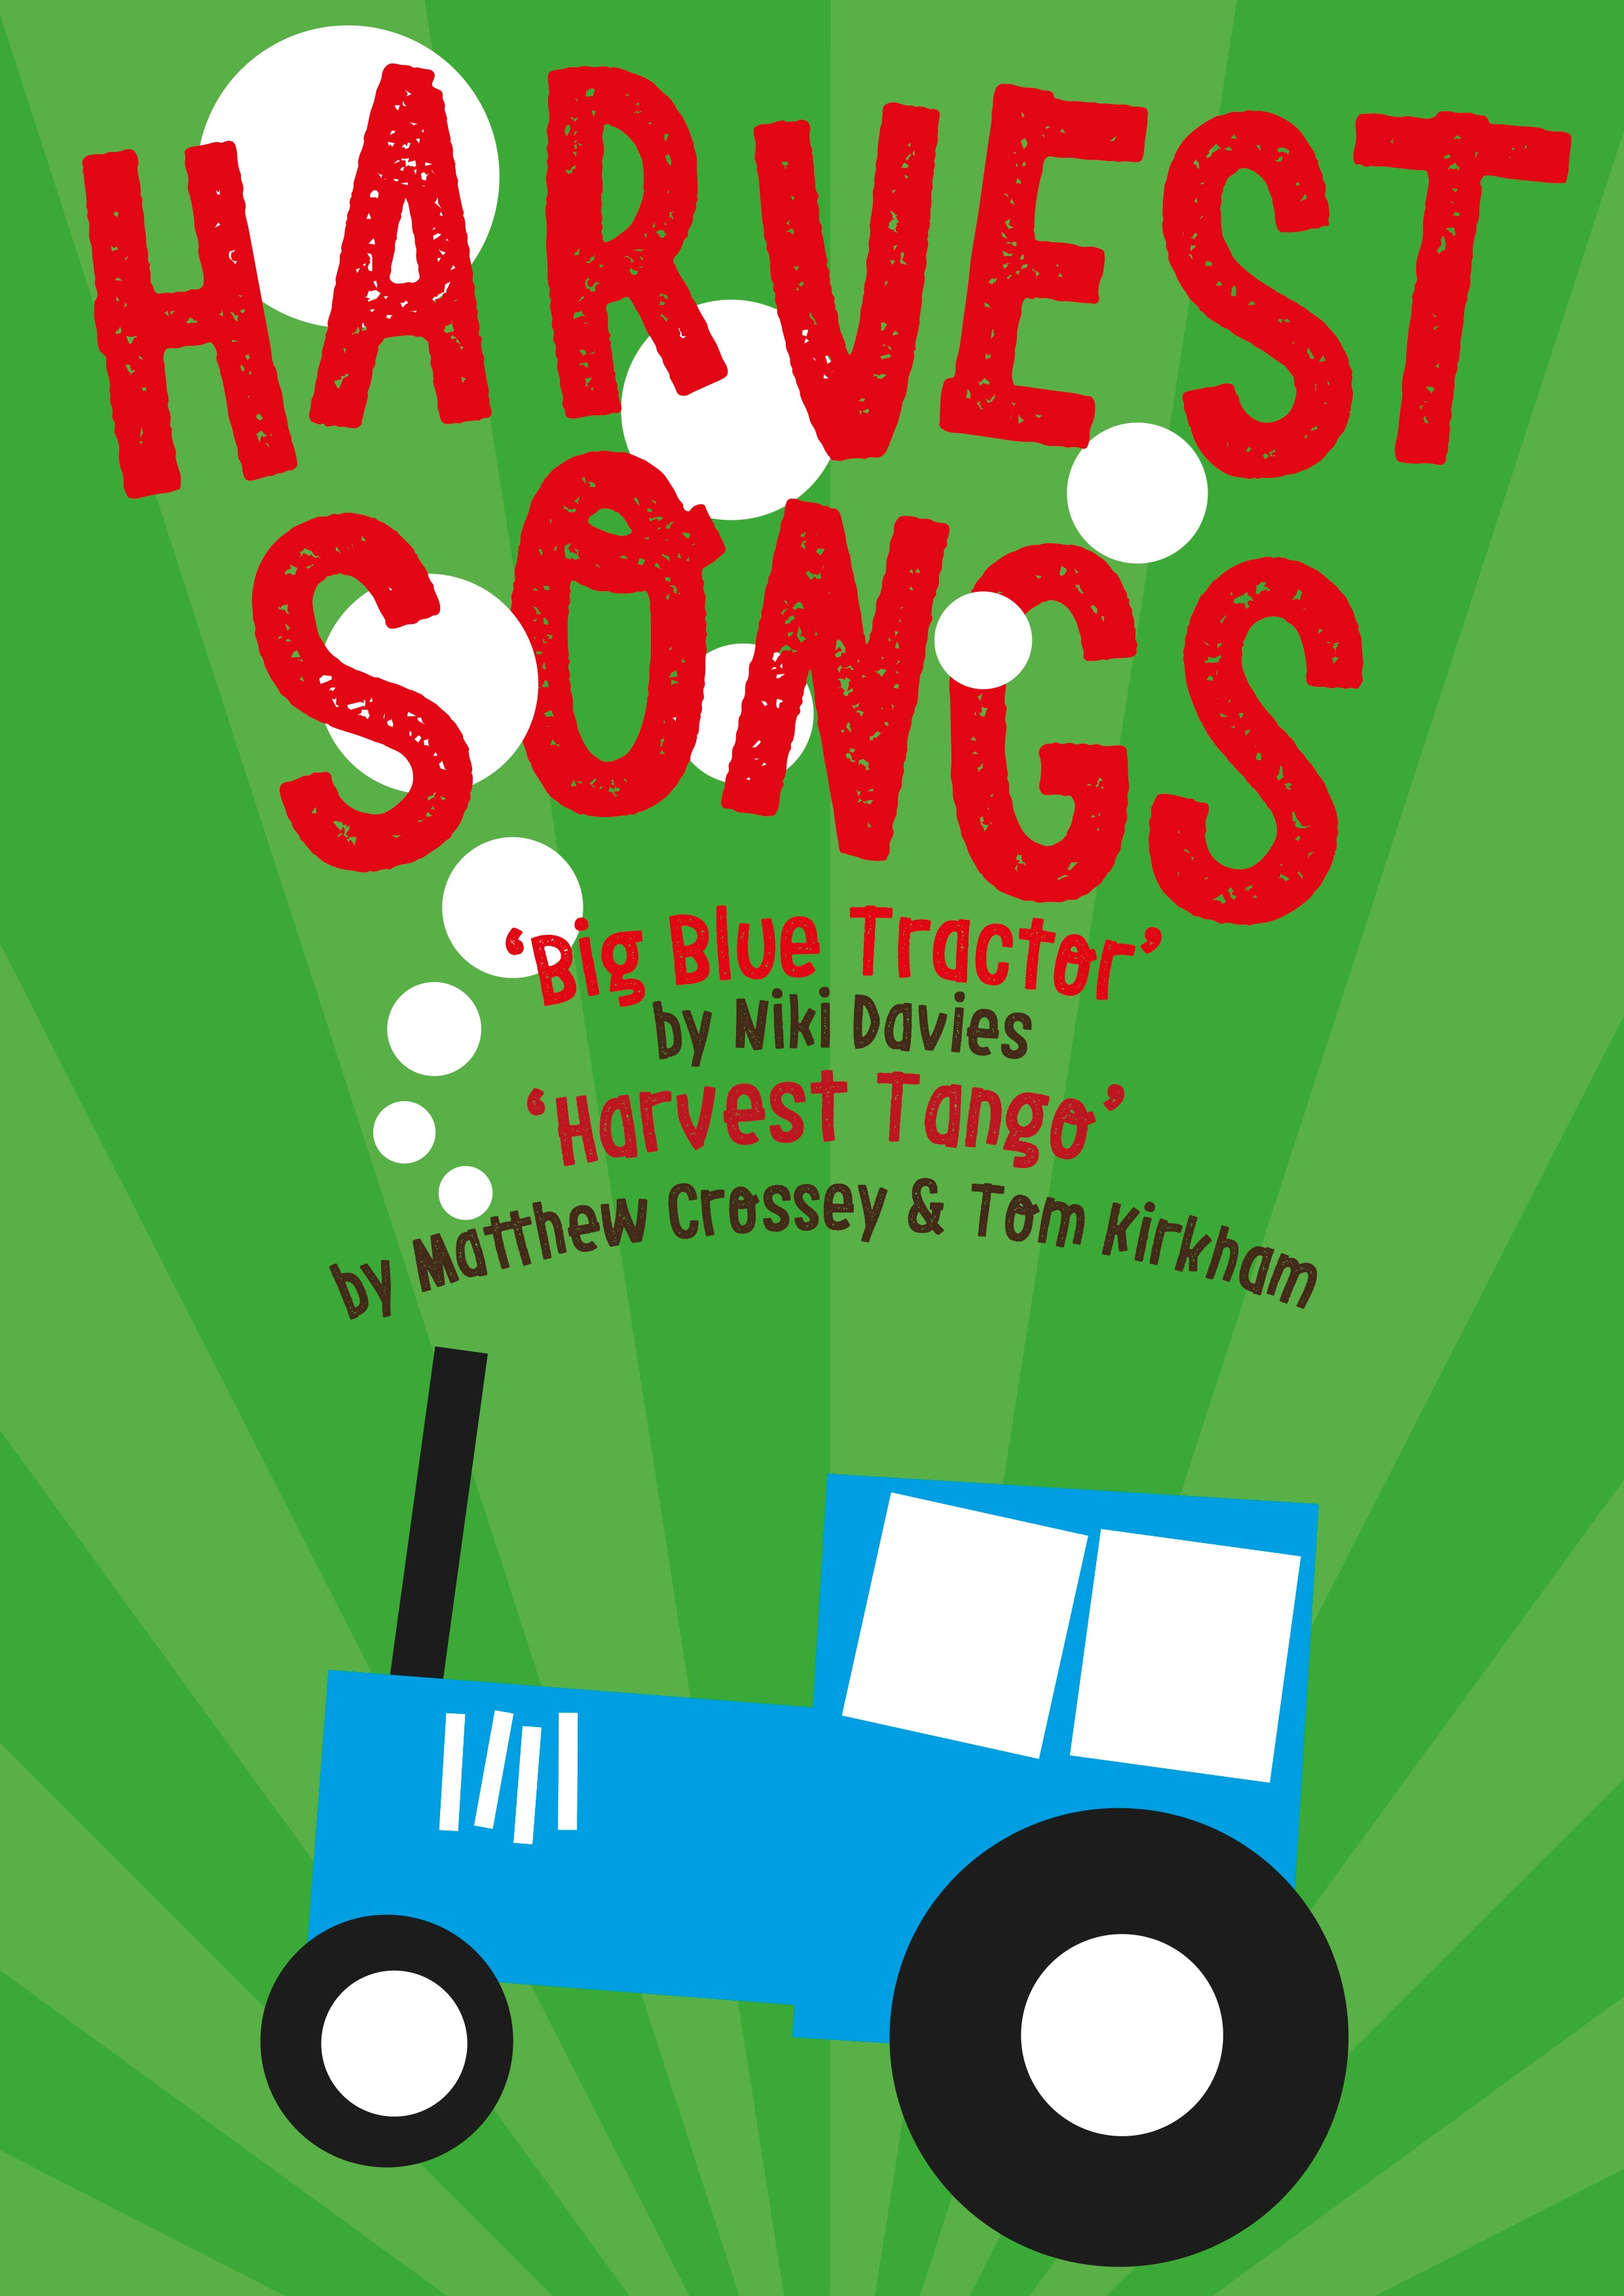 Harvest Songs Download Pack - 100% discount with code HARVEST